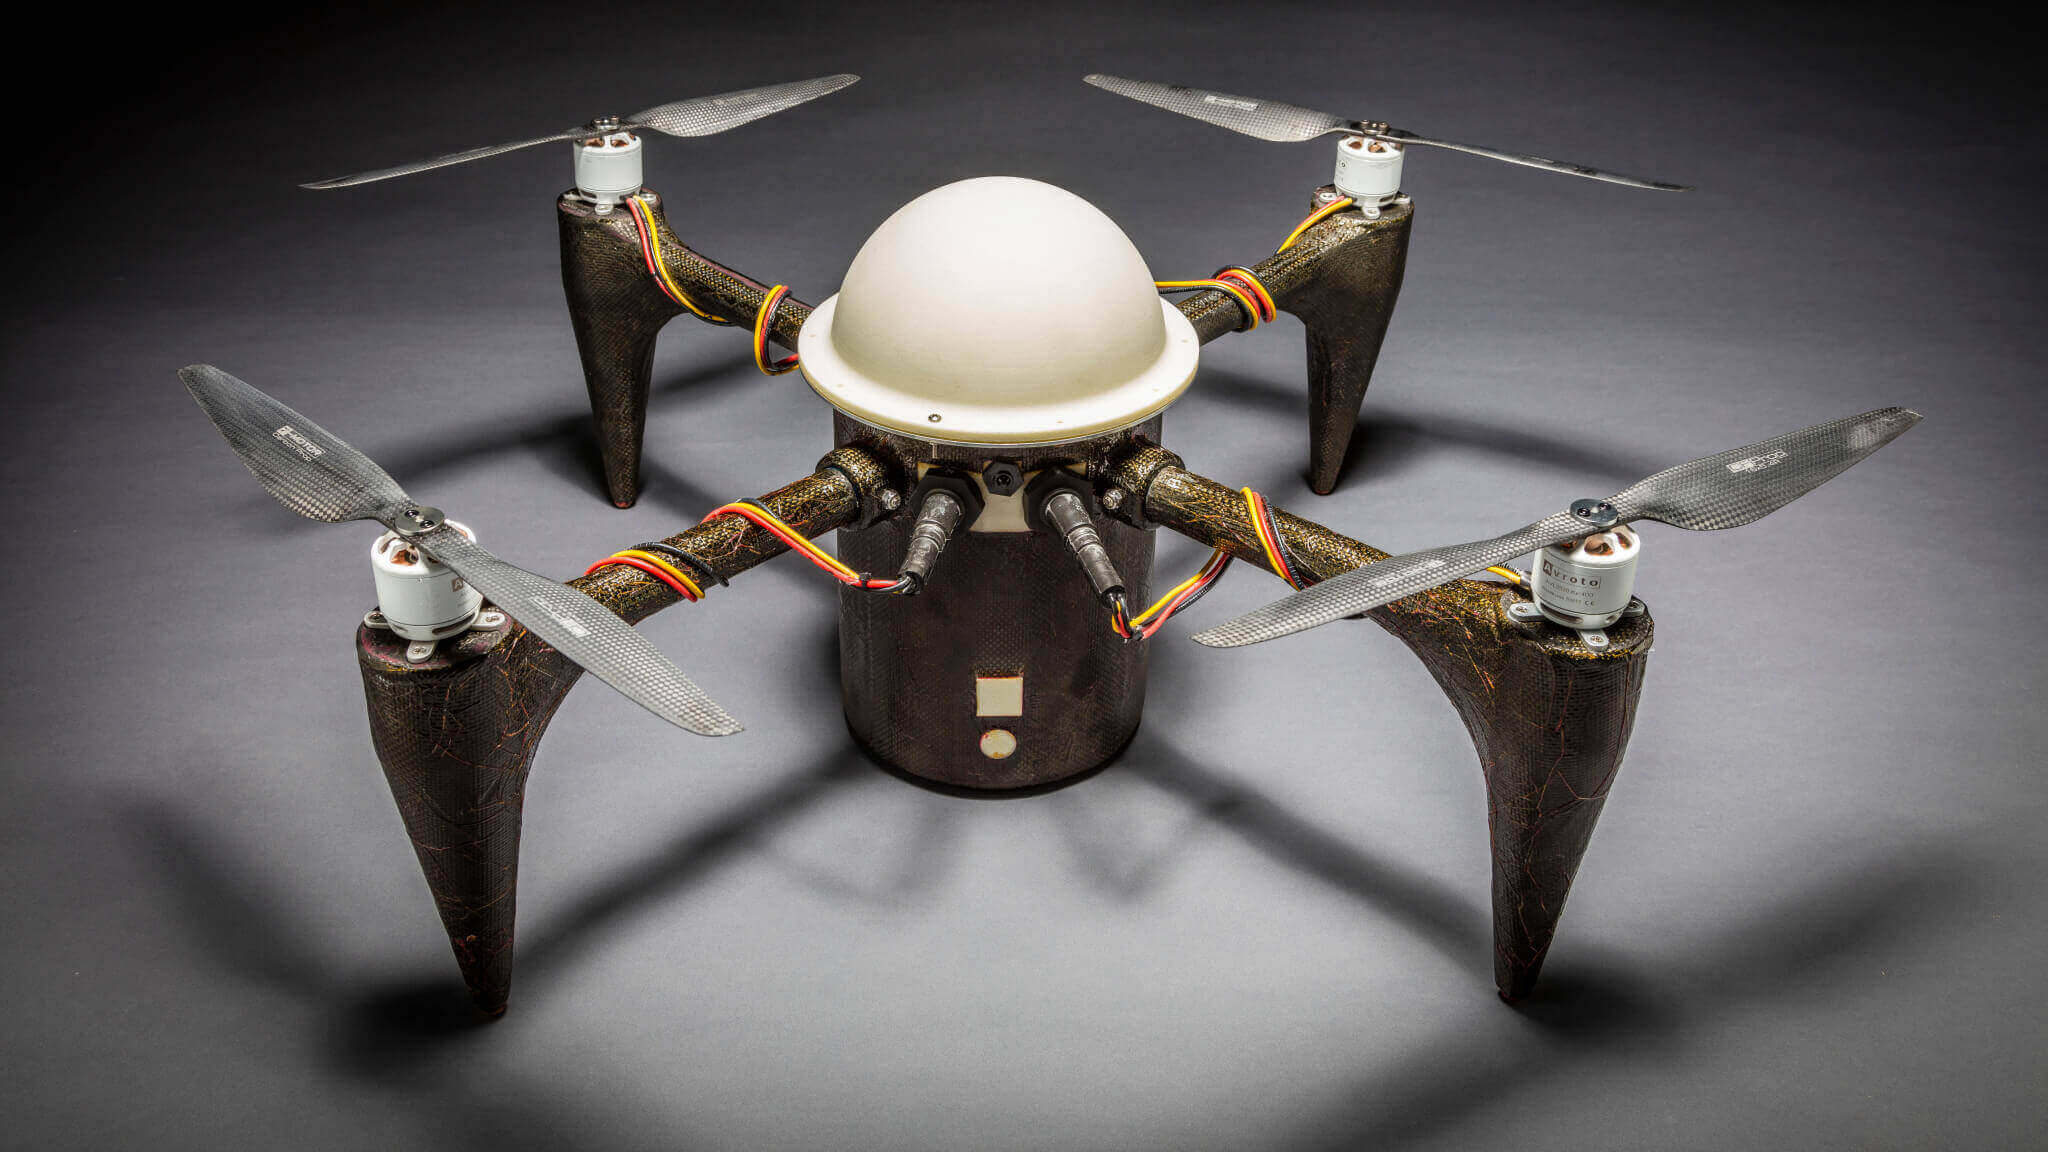 3D Printed CRACUNS Drone Can be Launched from Underwater | All3DP